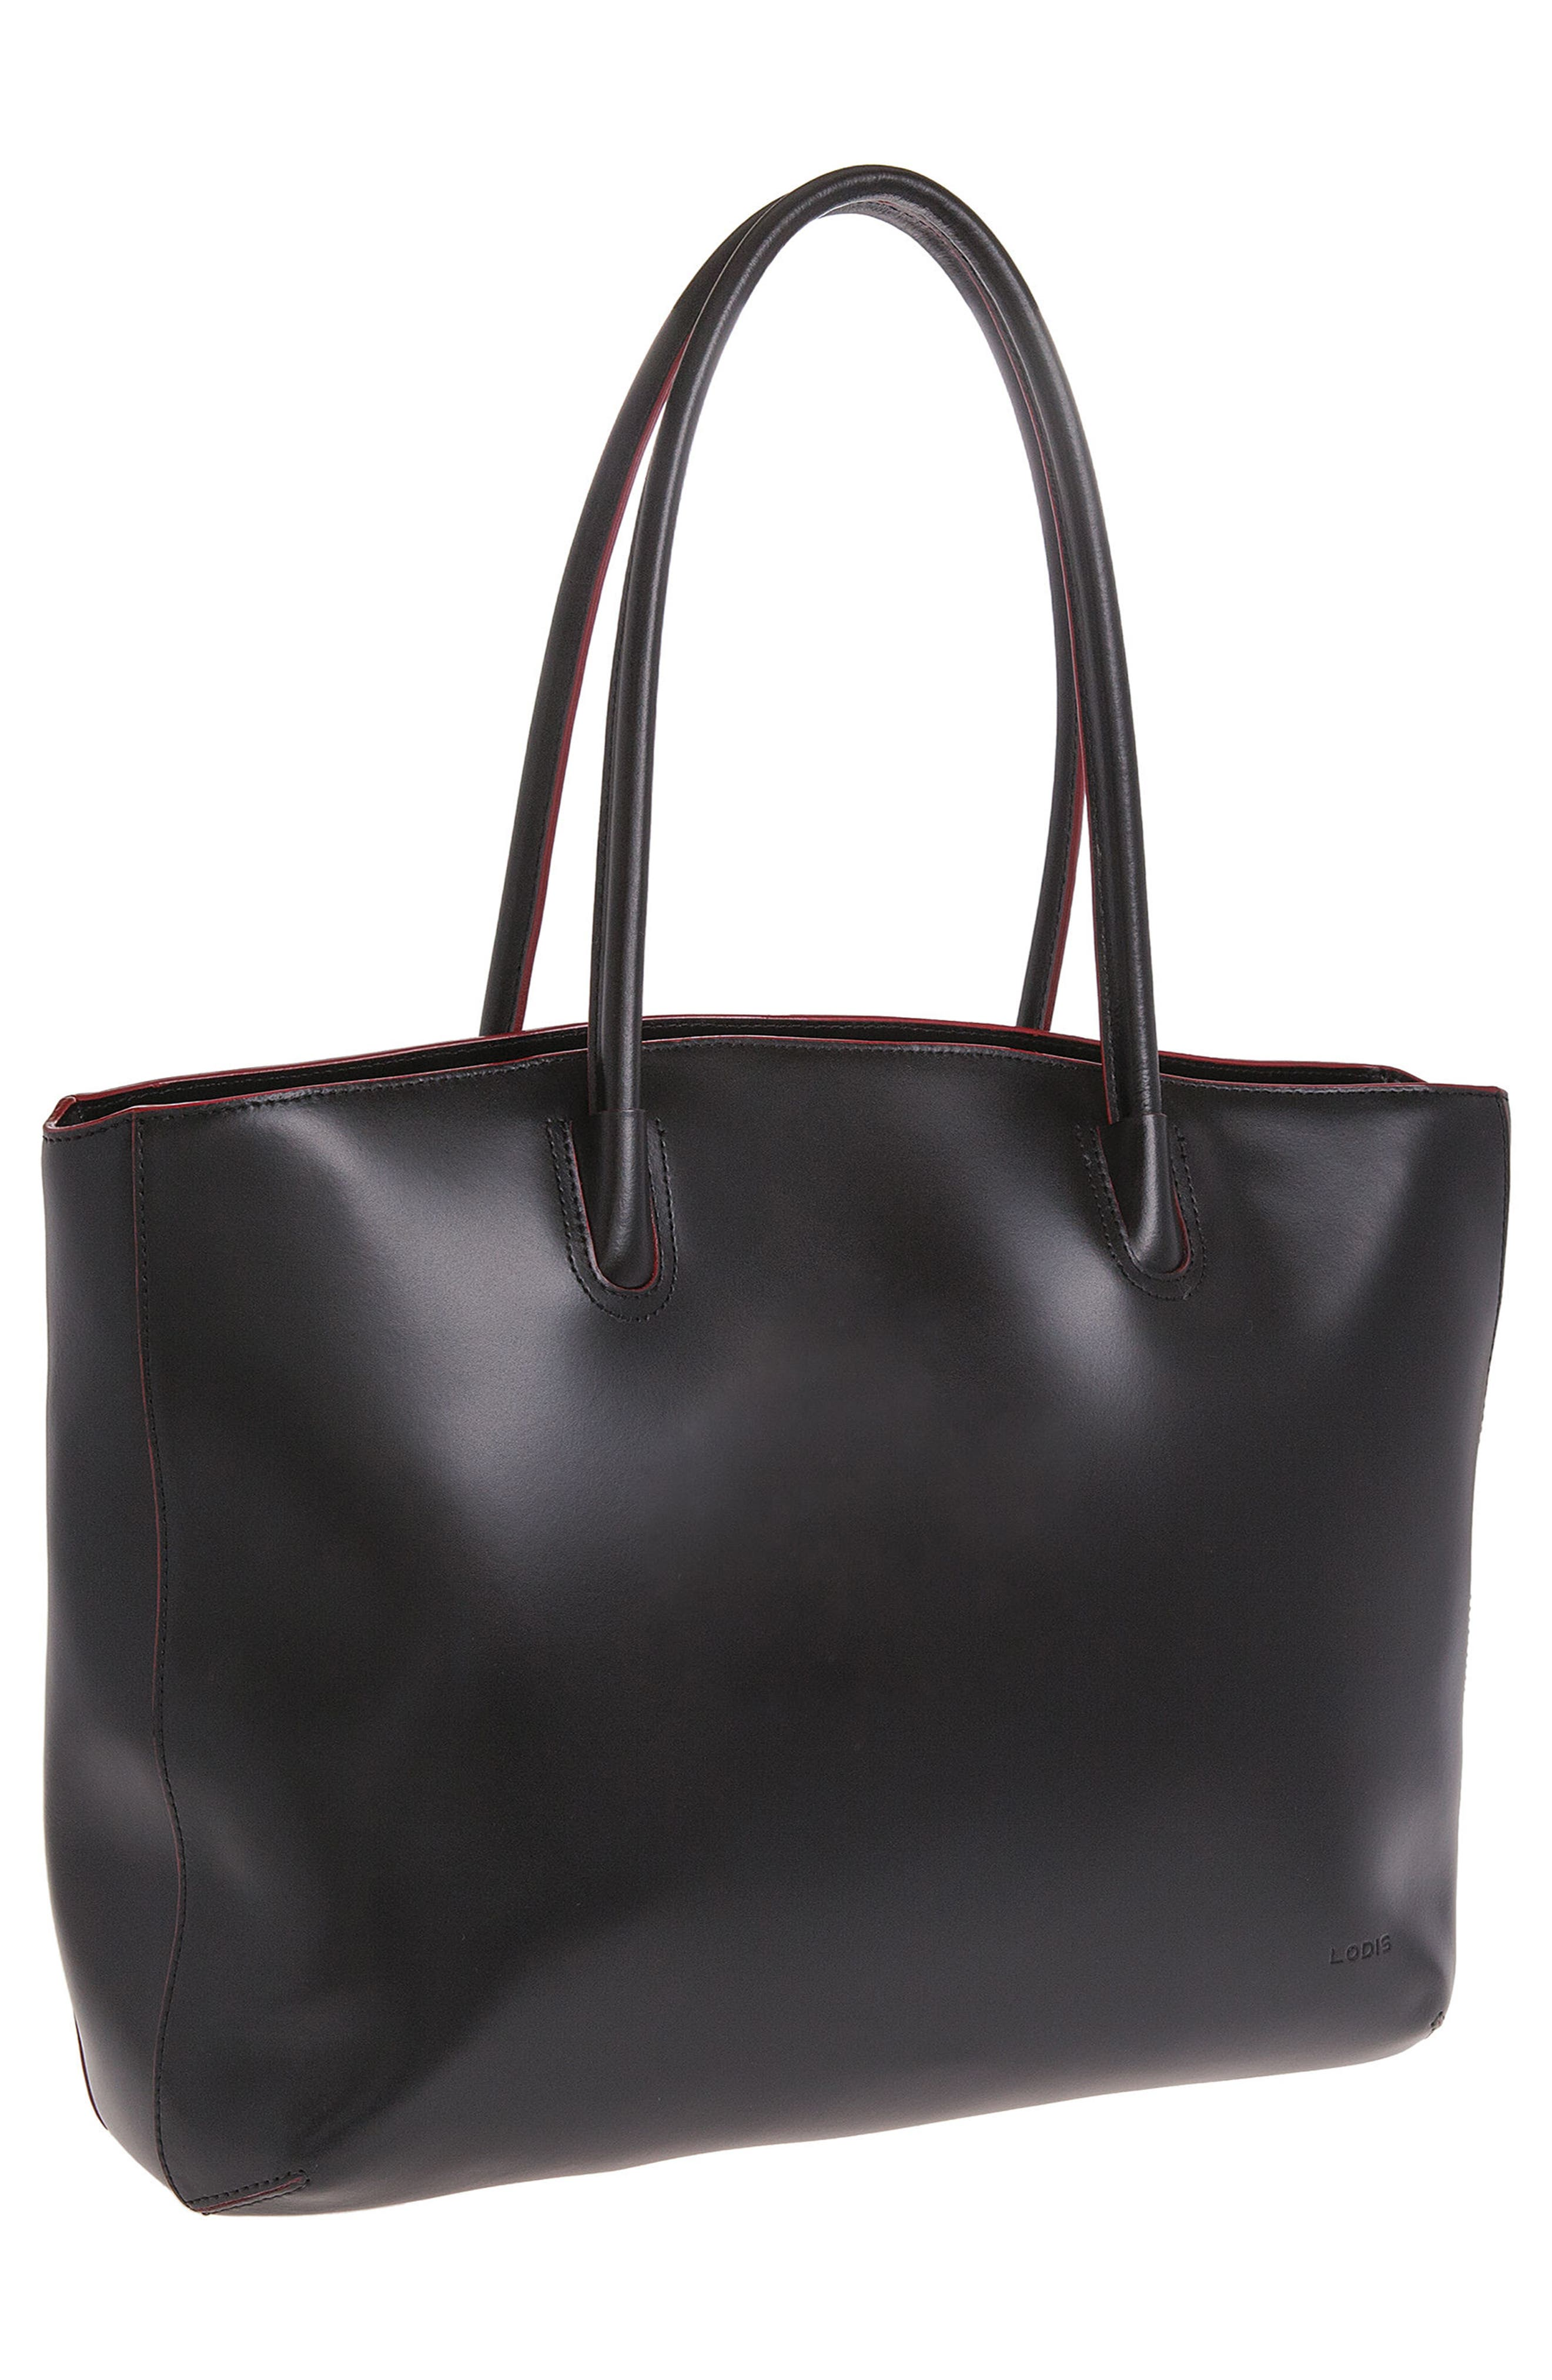 Lodis 'Audrey - Milano' Leather Computer Tote,                             Alternate thumbnail 4, color,                             001